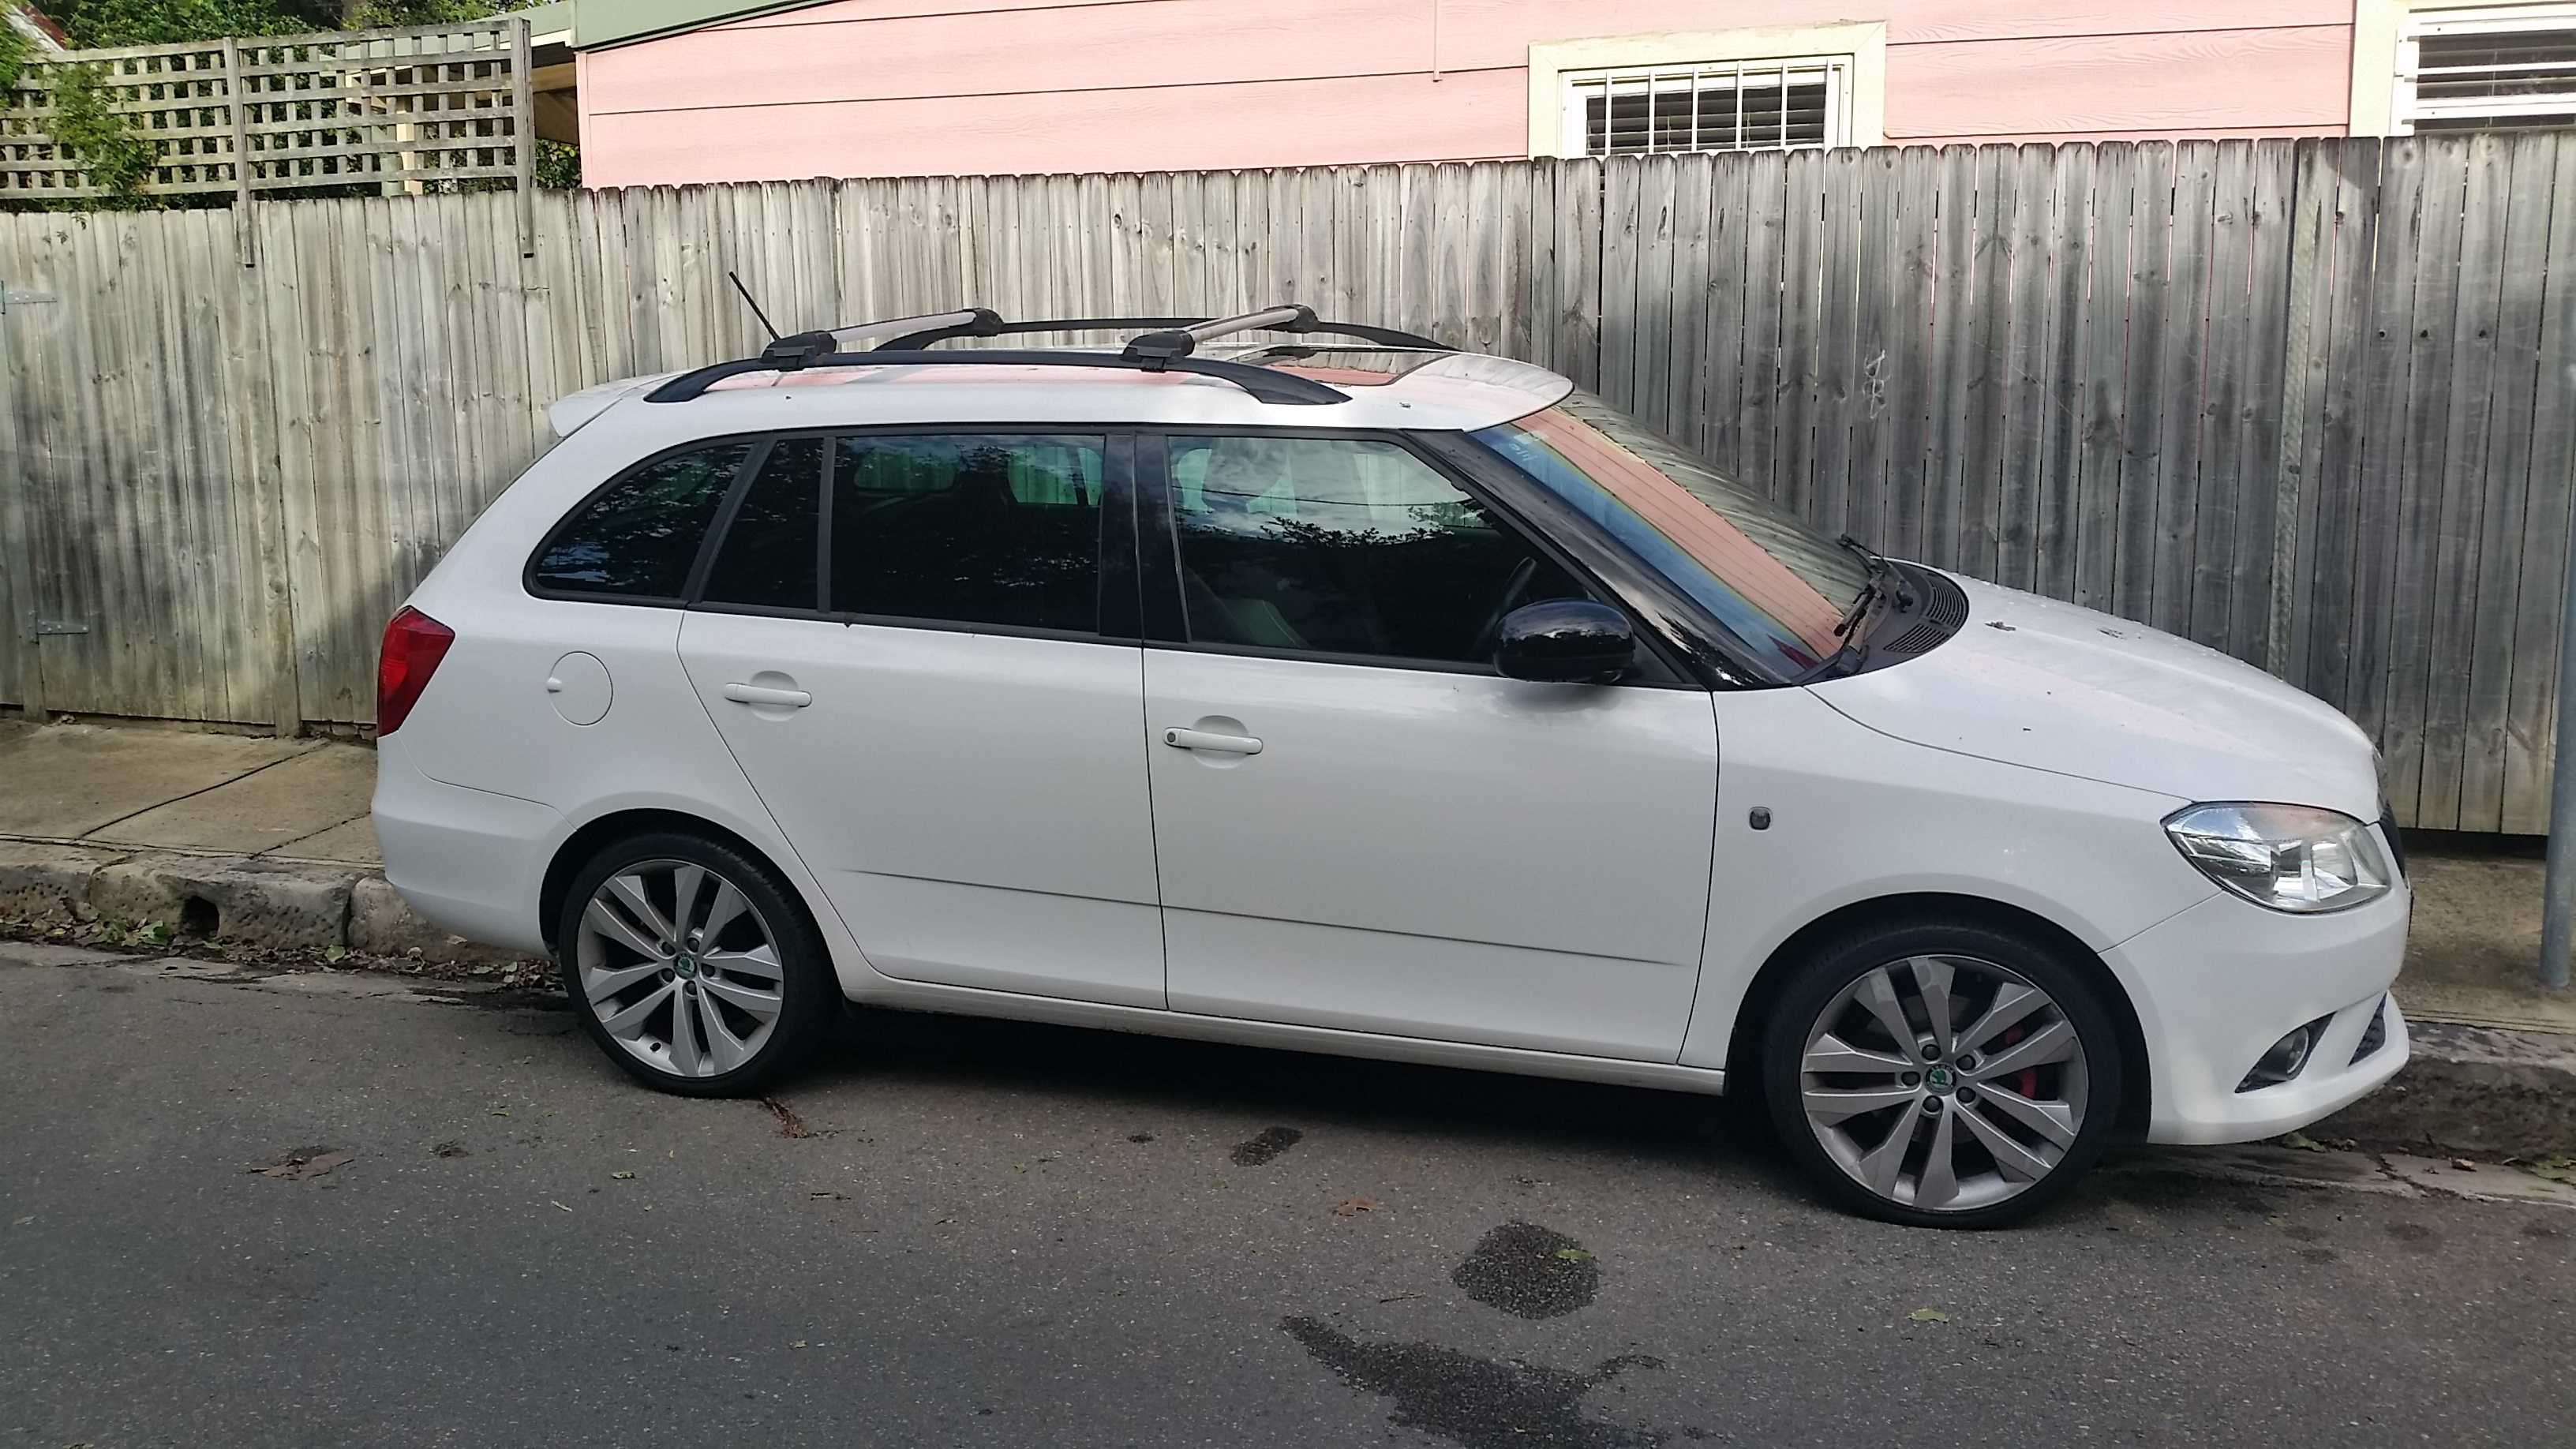 Picture of David's 2012 Other - Standard Fabia